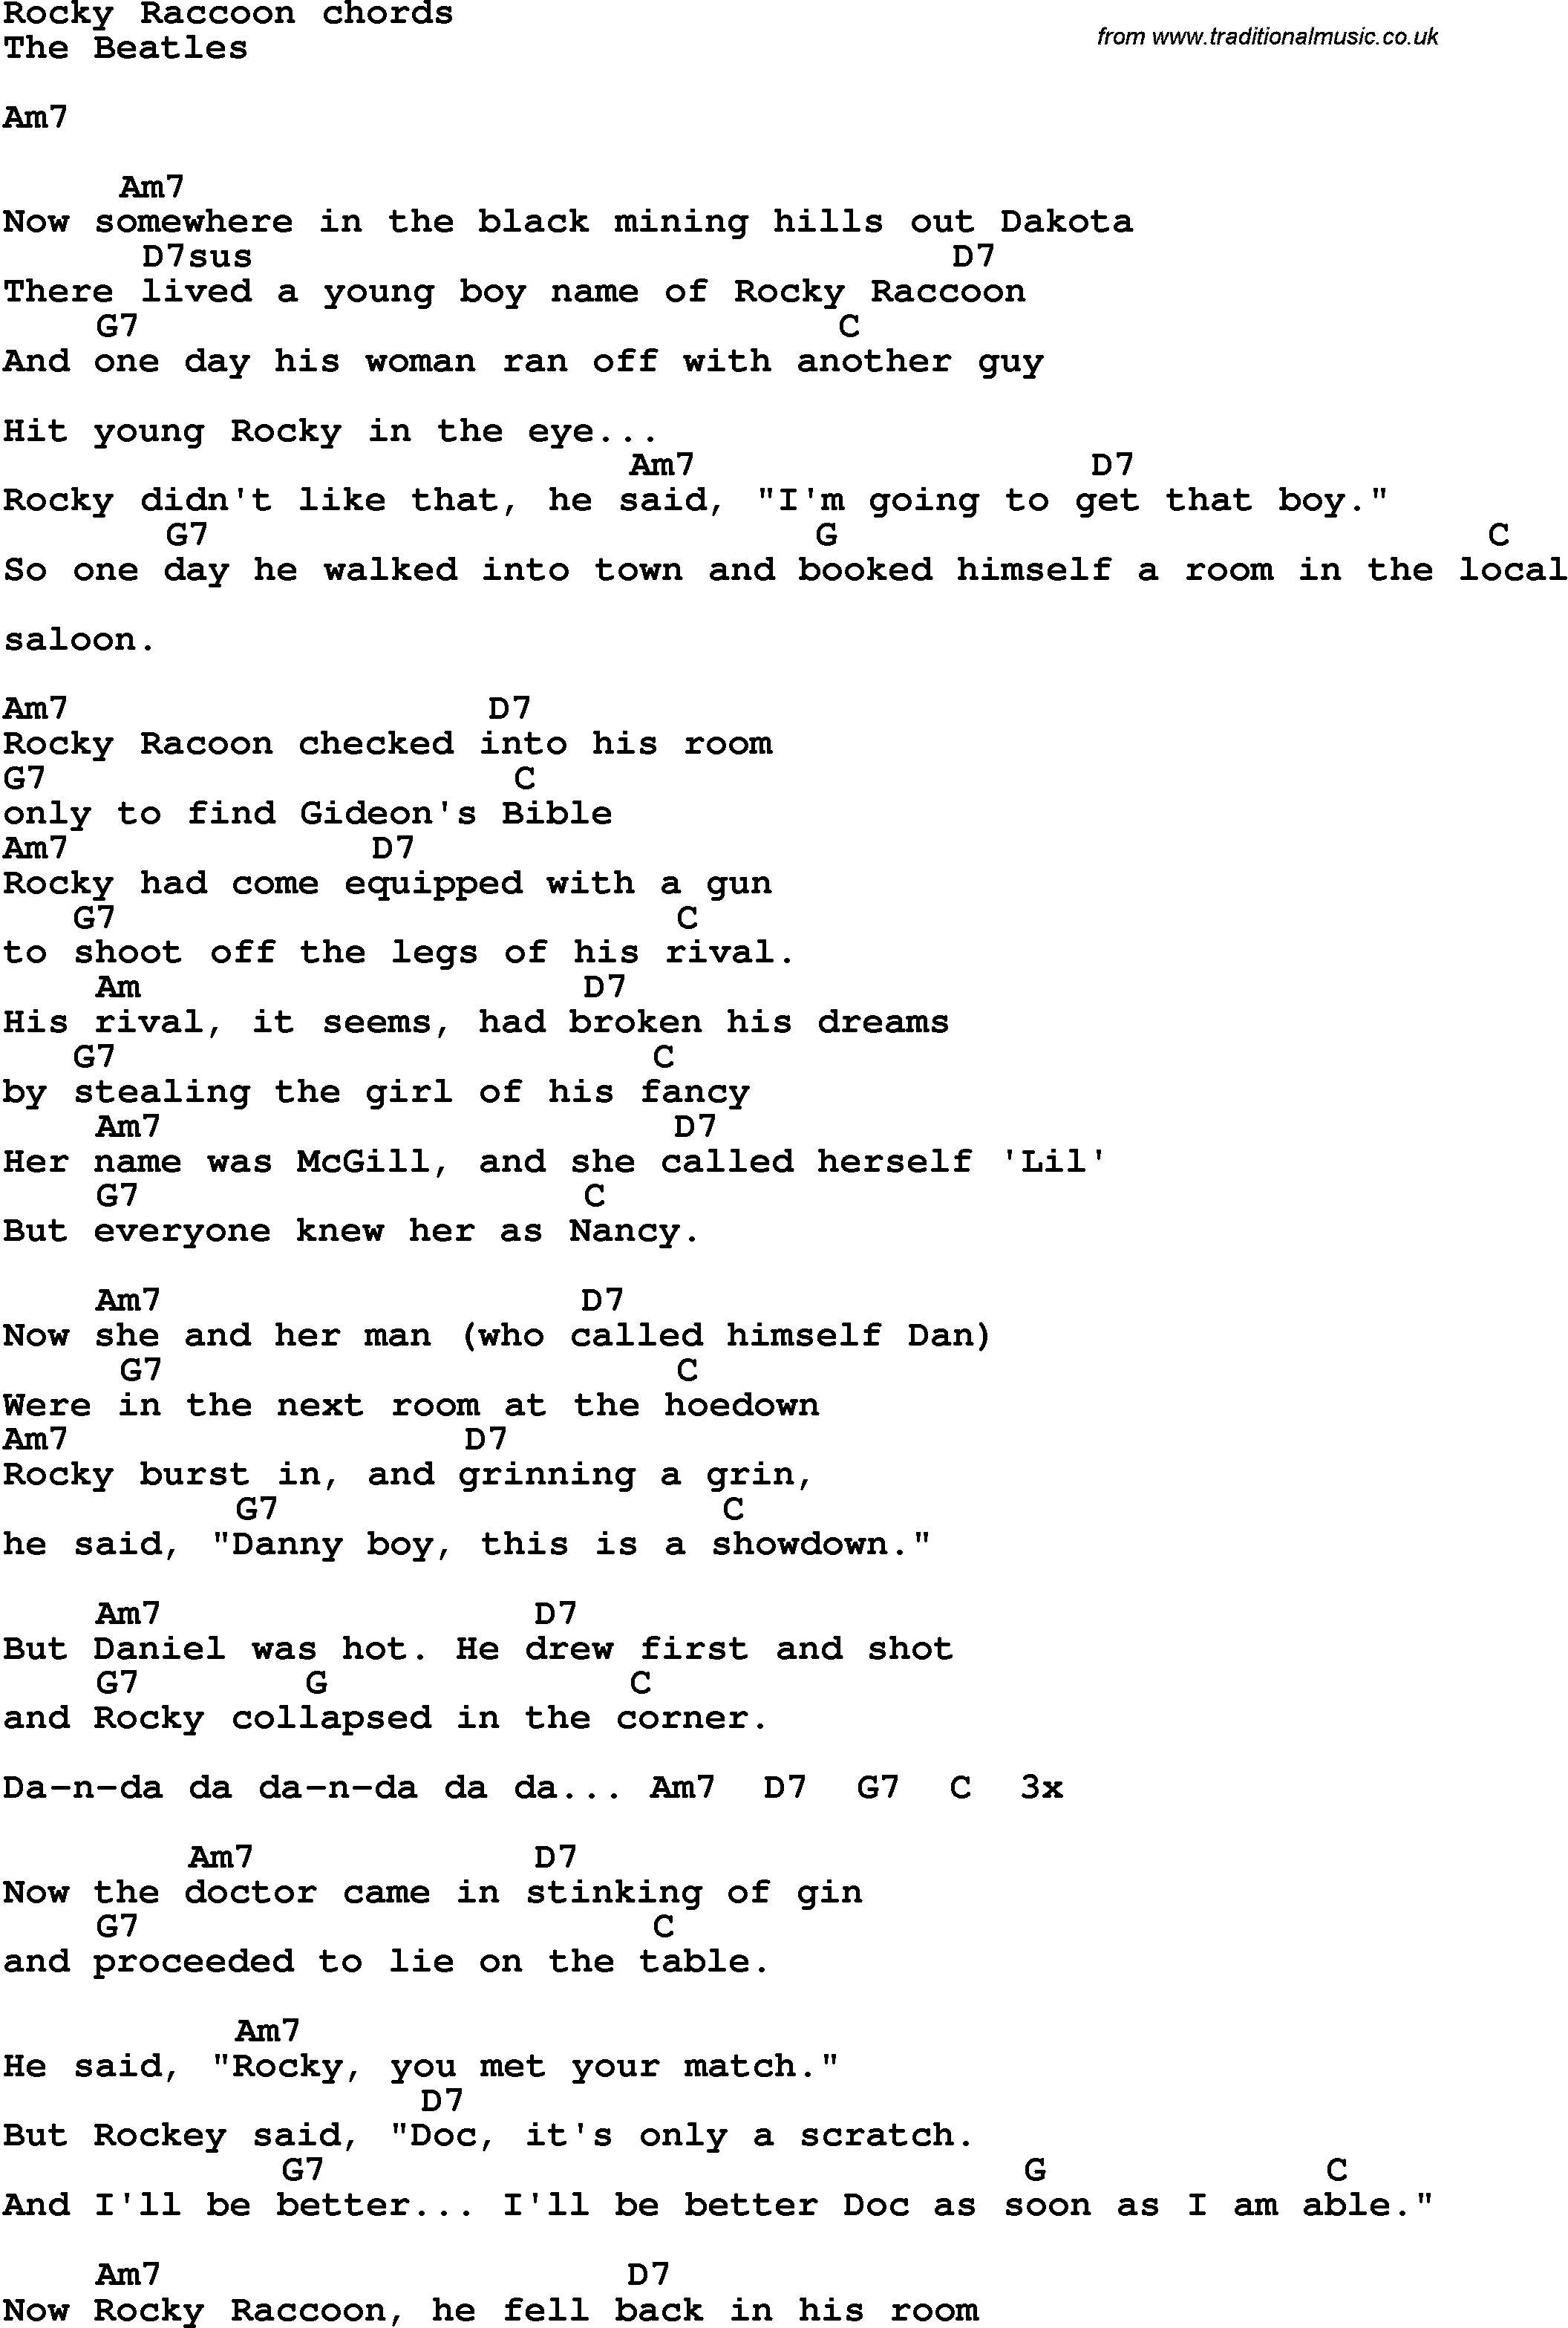 Song lyrics with guitar chords for rocky raccoon the beatles song lyrics with guitar chords for rocky raccoon the beatles hexwebz Images